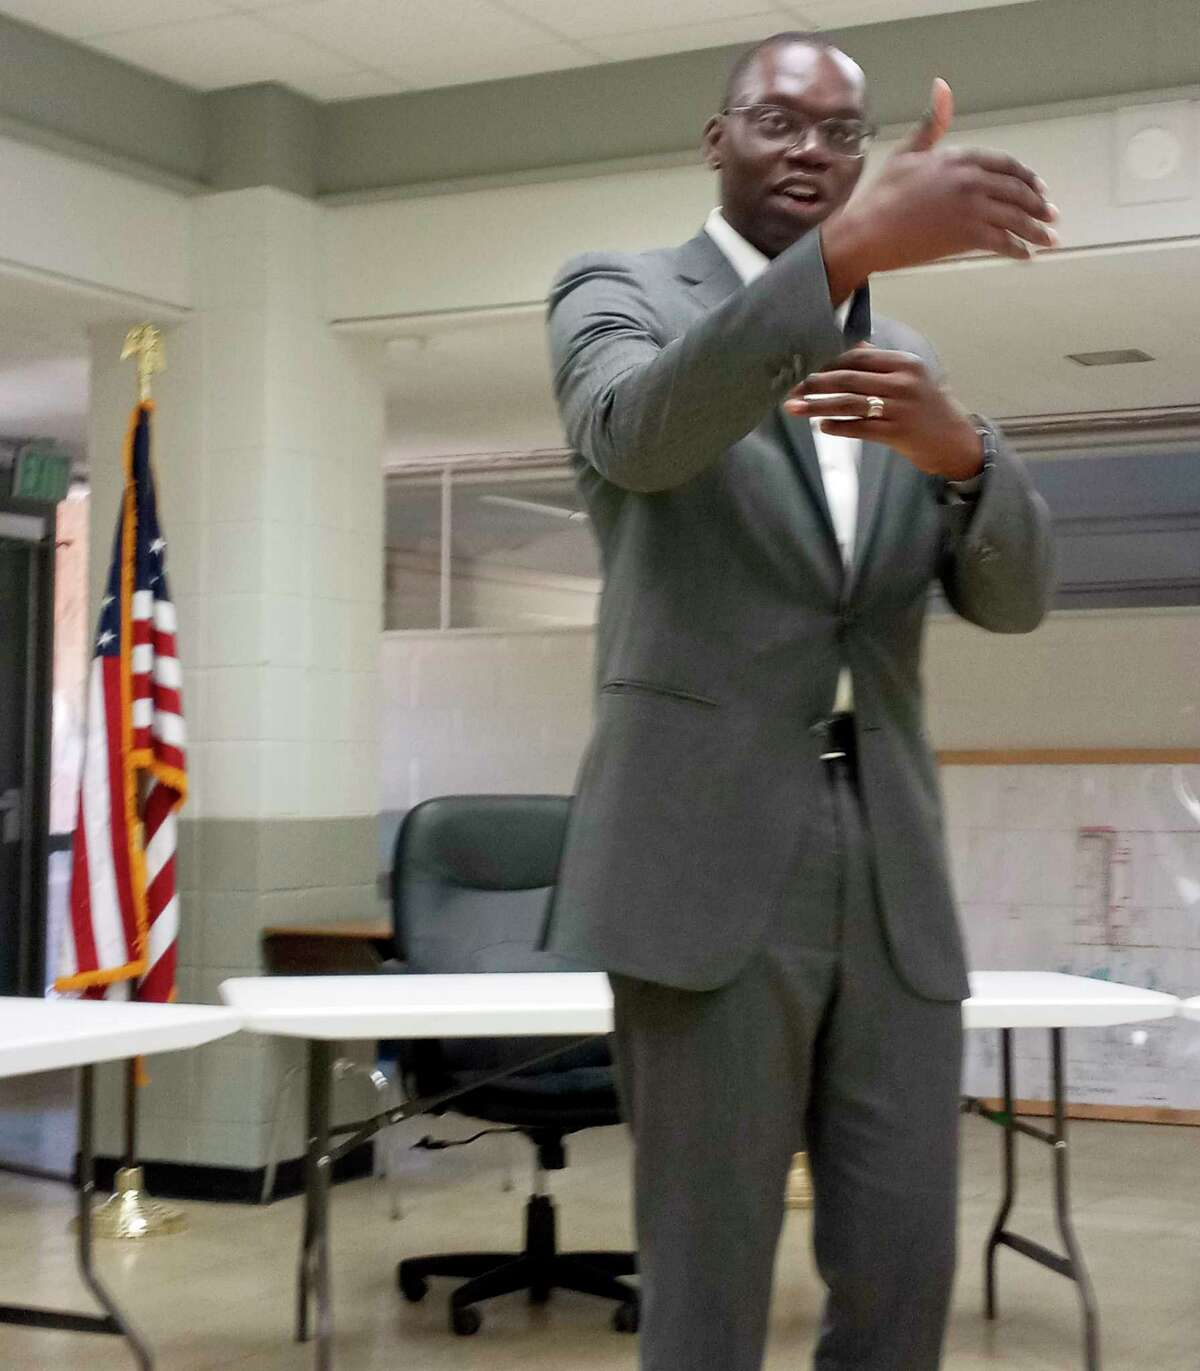 Lt. Gov. Garlin Gilchrist spoke about the importance of implementing fast and accessible internet services in Lake County. (Star photo/Shanna Avery)